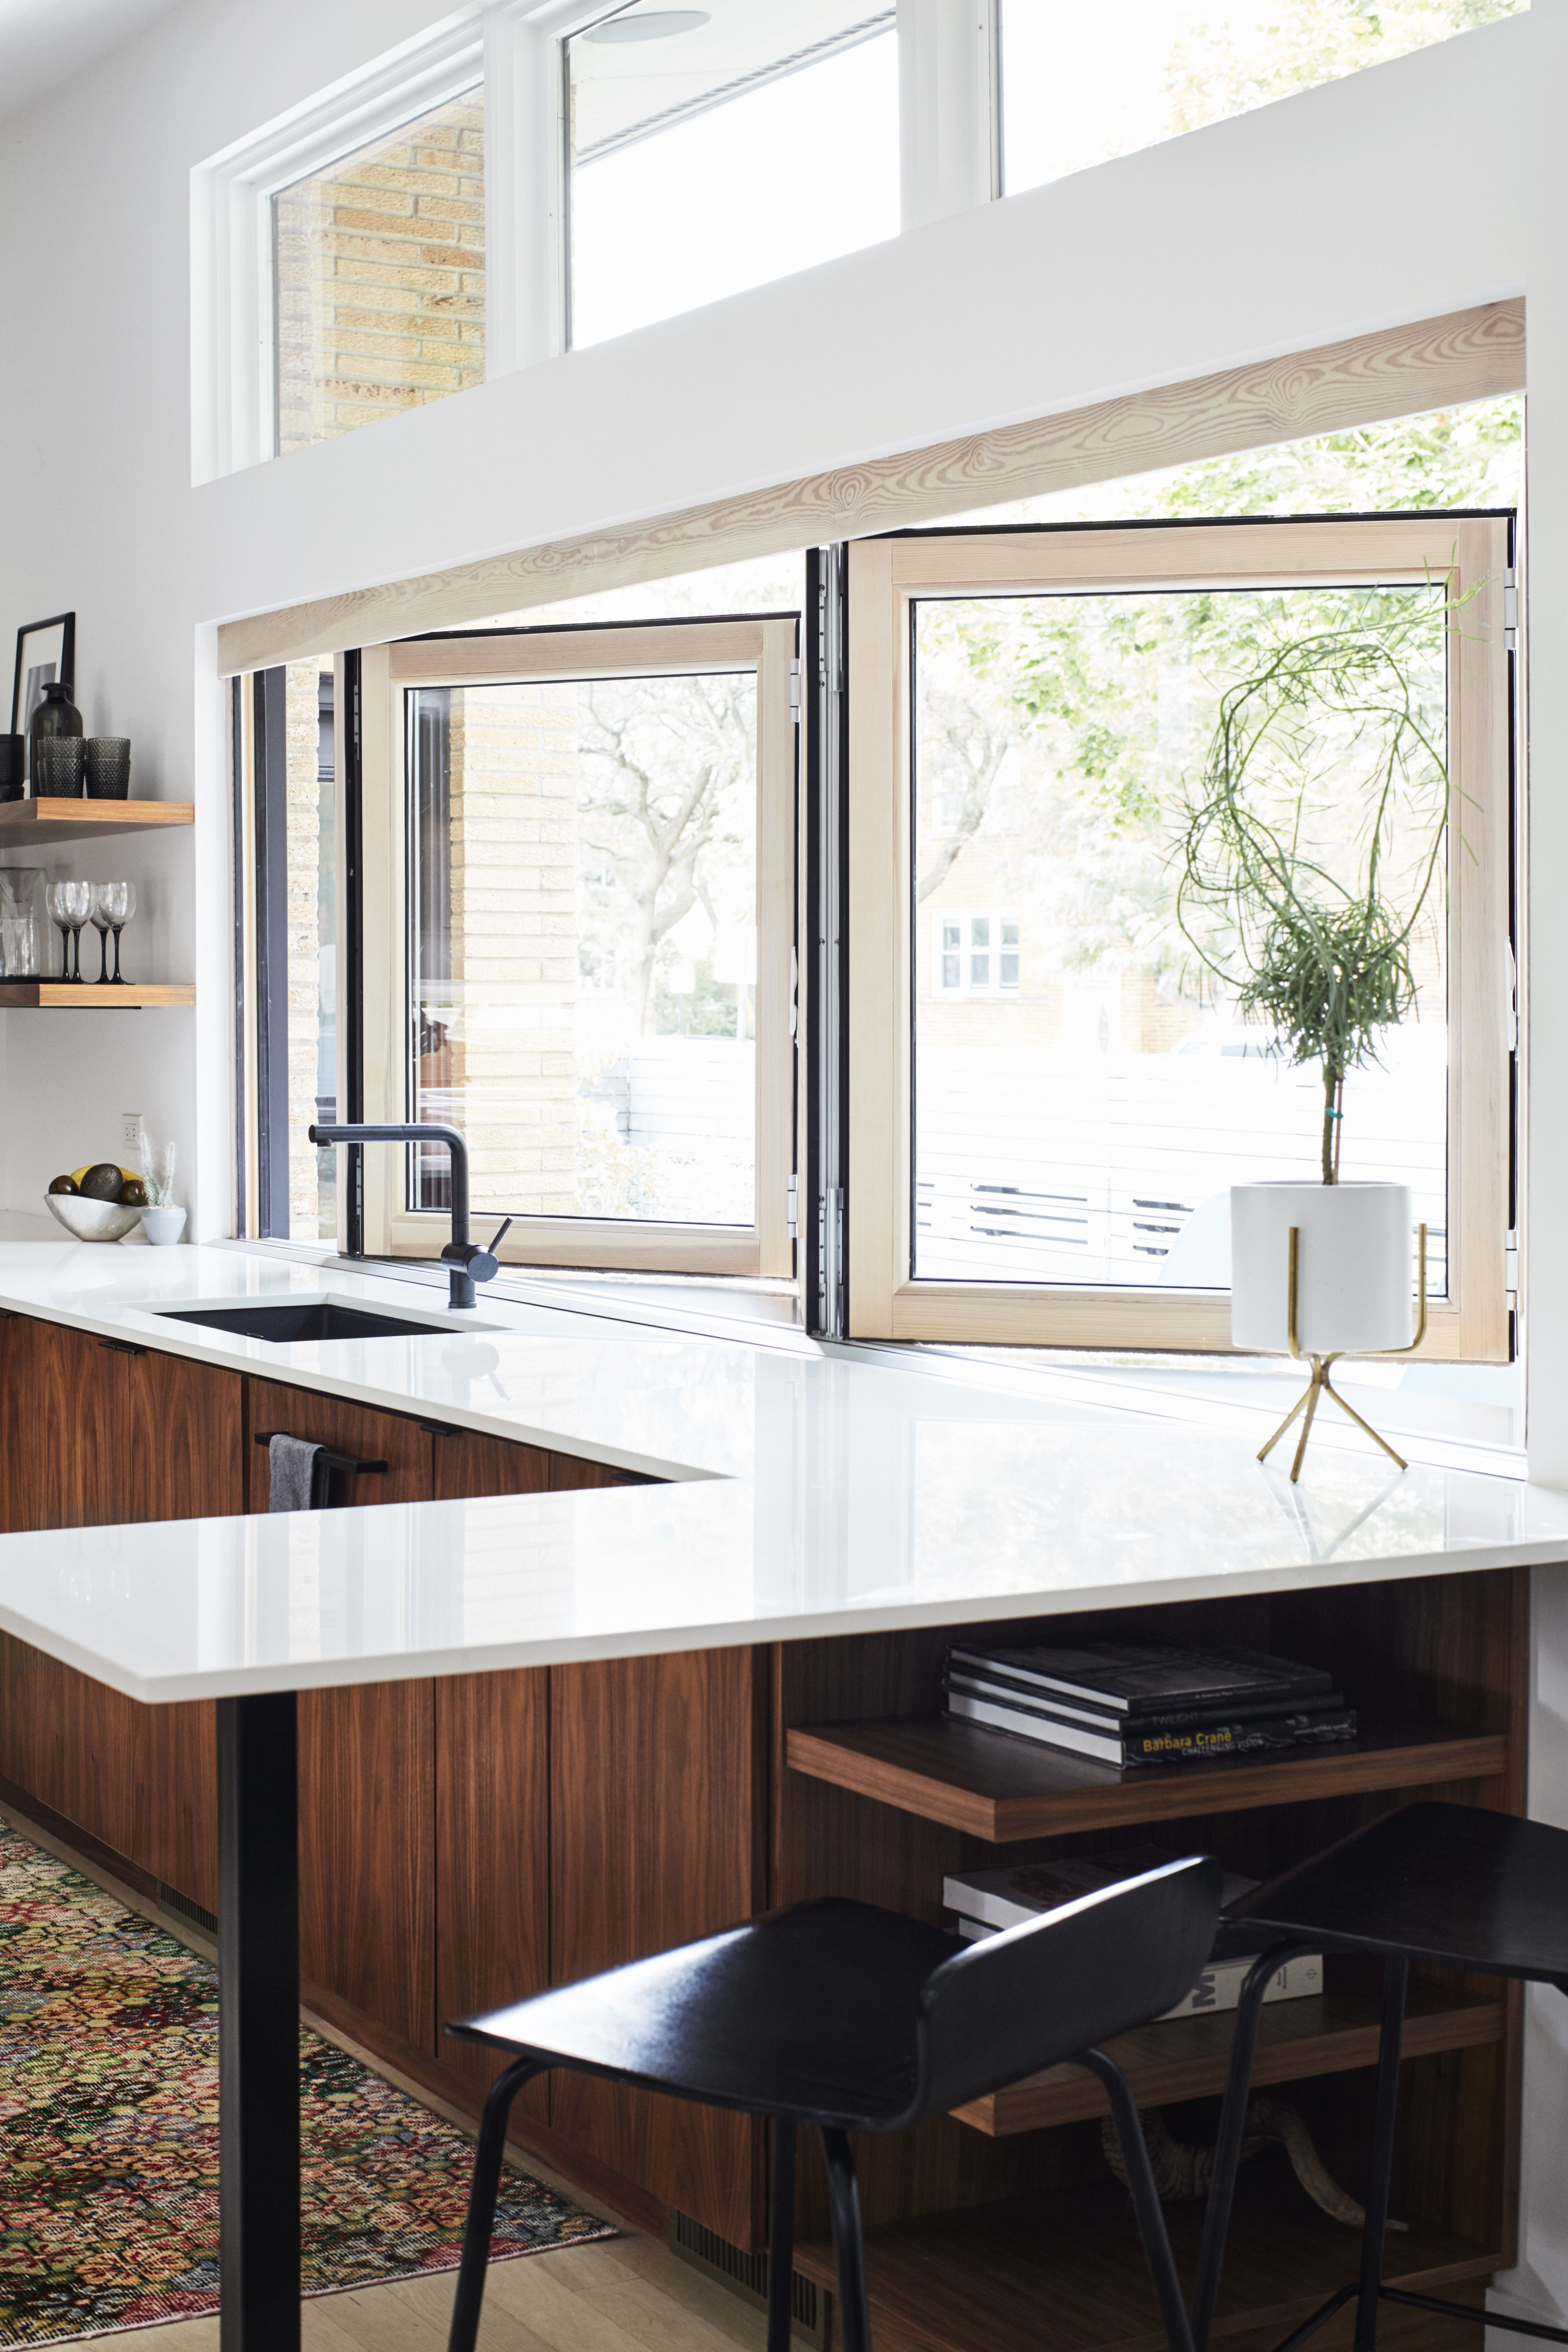 A 14 foot wide opening defines the kitchen which